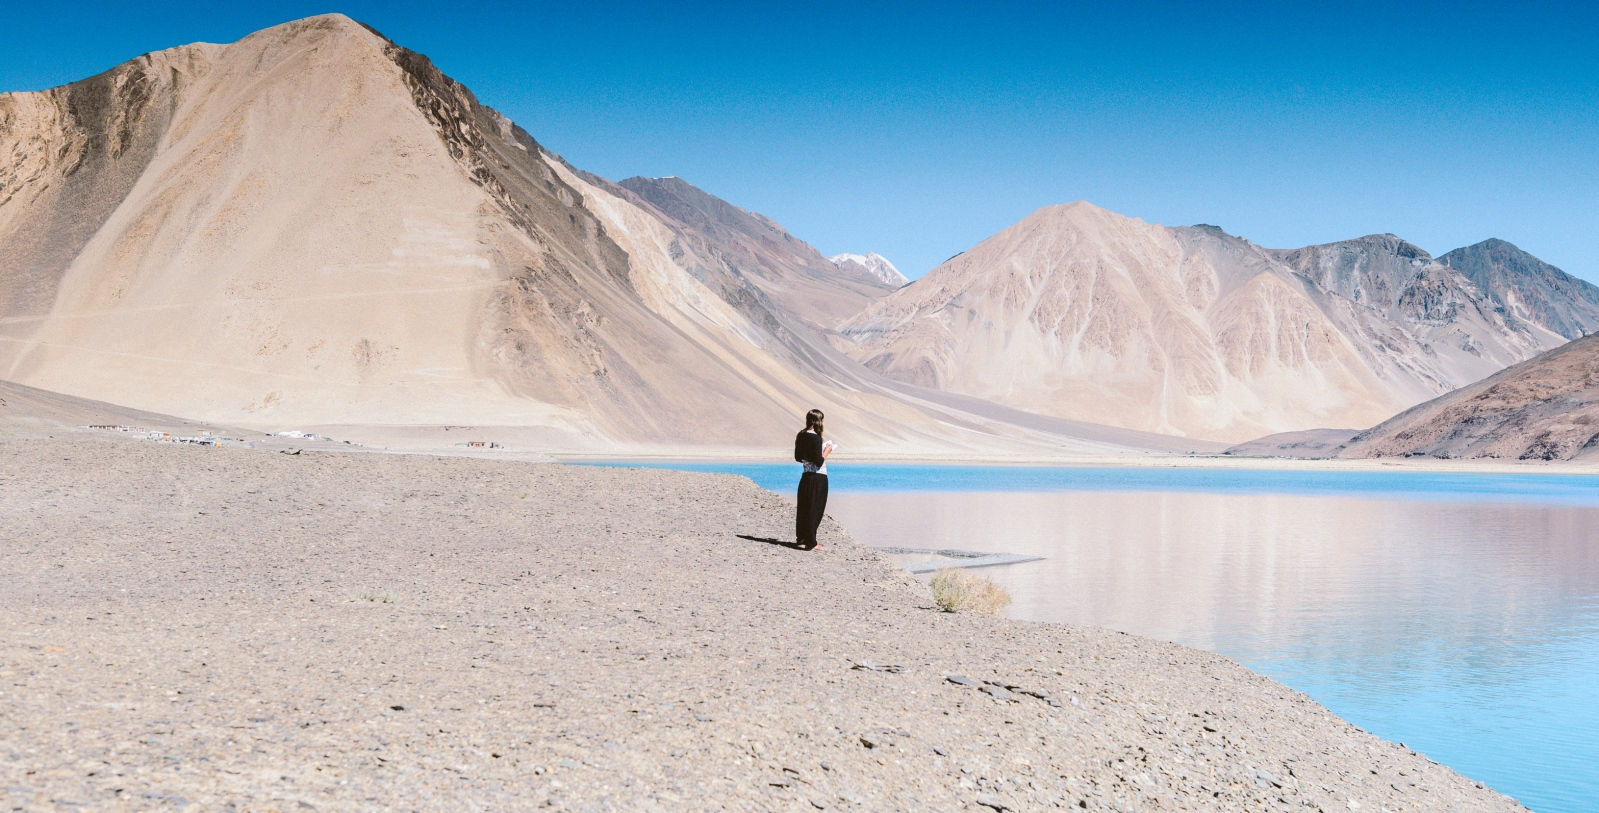 A young Israeli woman by the shore of Pangong Lake faces West towards Jerusalem to make prayers on a day of Sabbat on the contested India-China border in Ladakh.